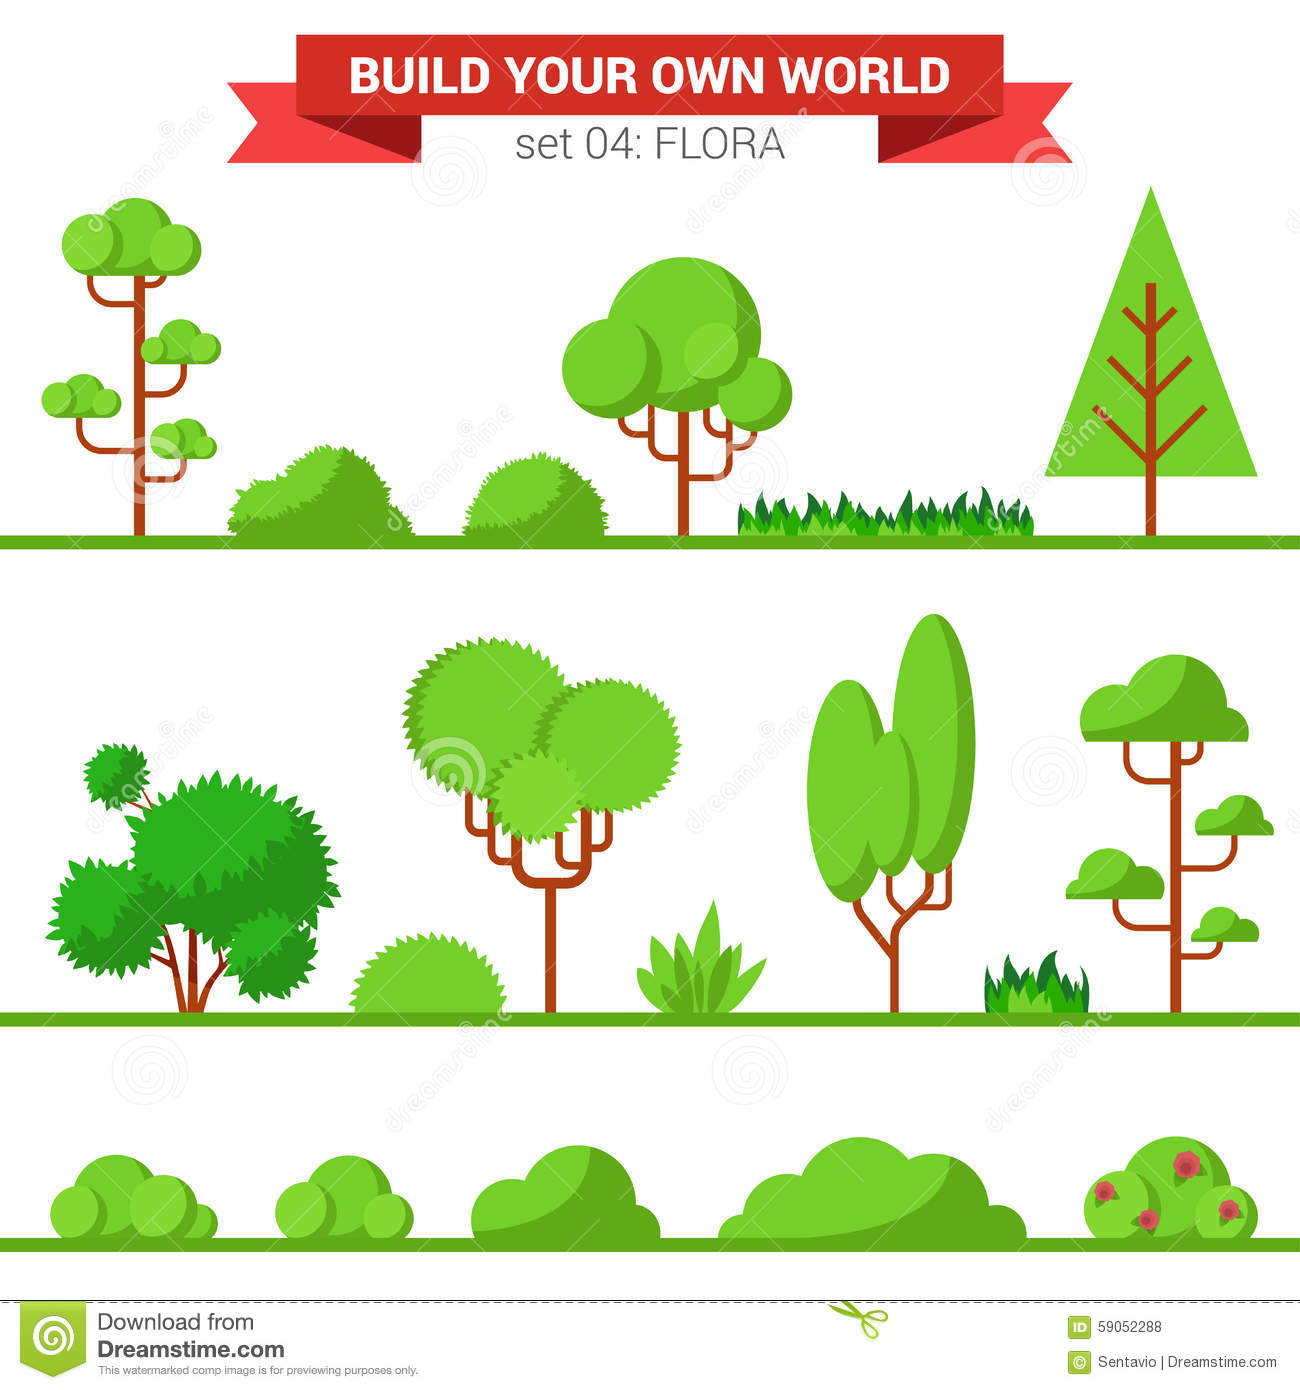 Flora plant green trees vector flat icon pine fir palm - Create your world ...